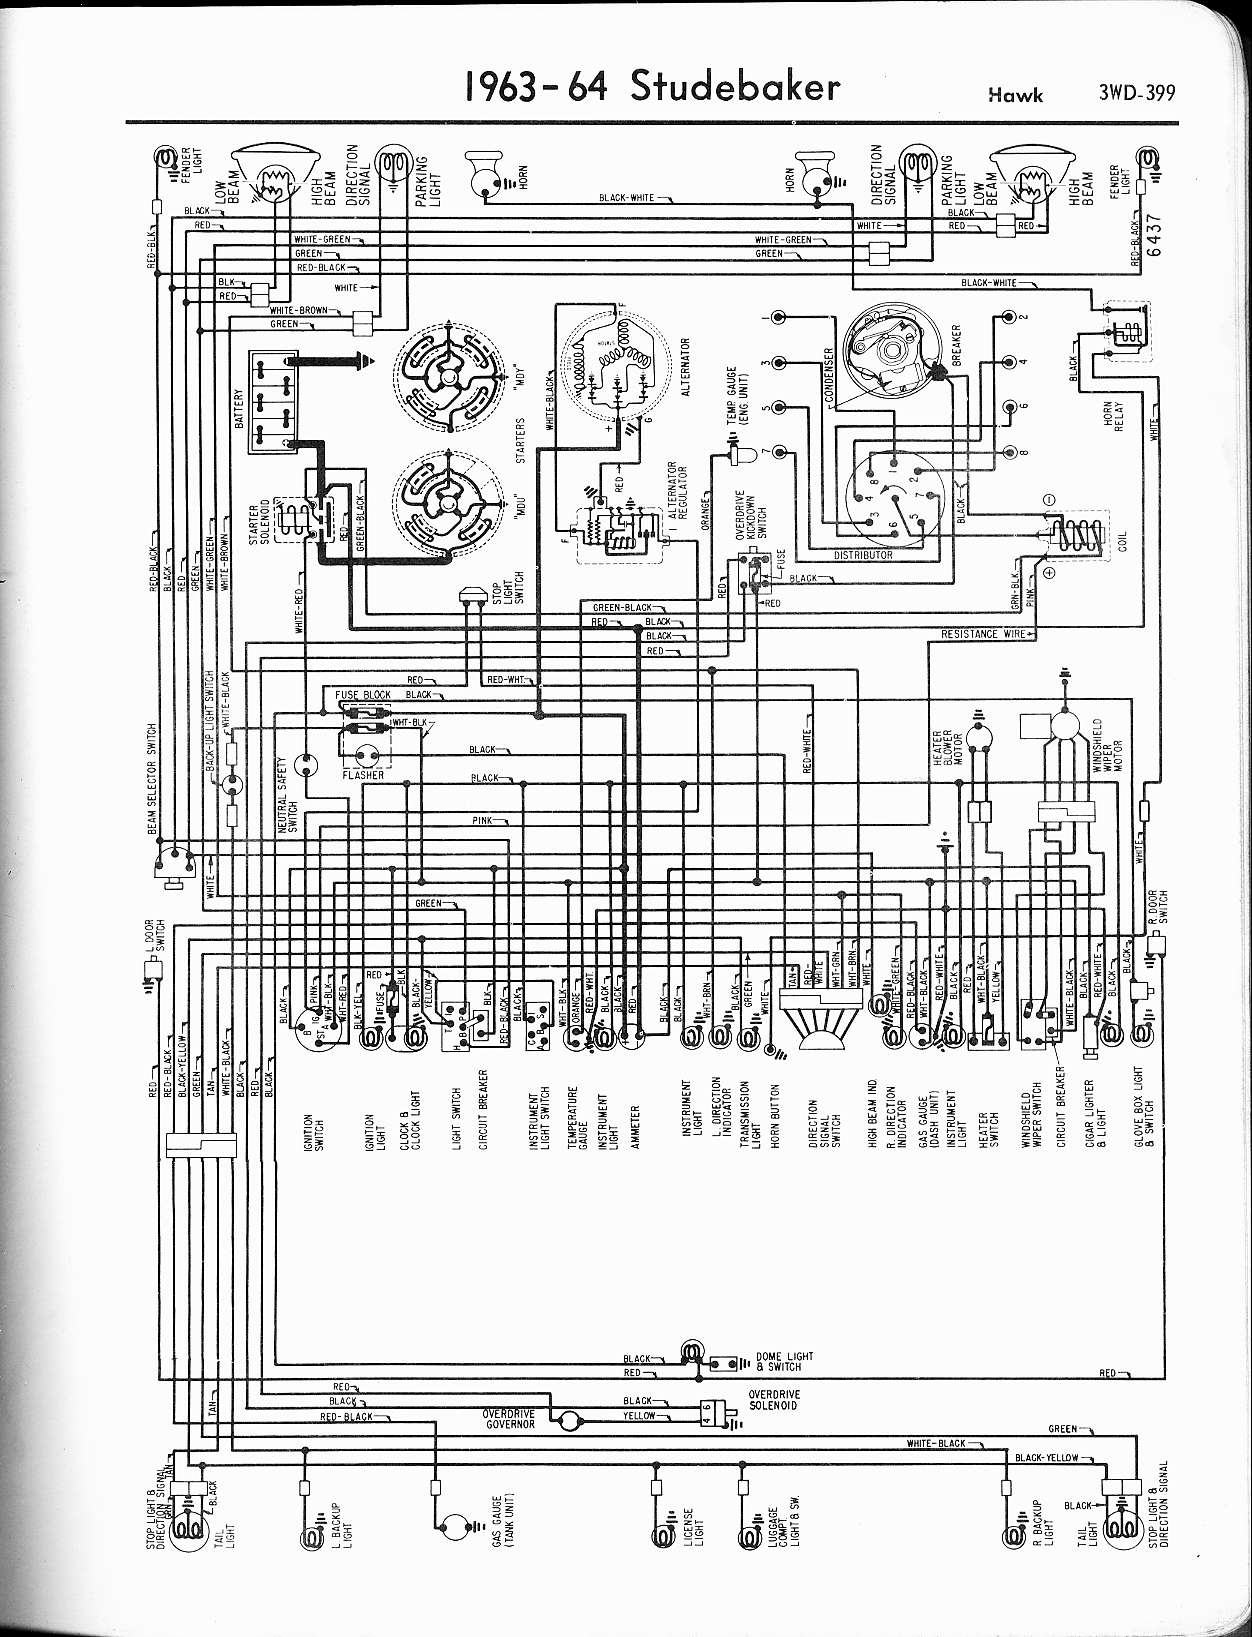 studebaker wiring diagrams the old car manual project rh oldcarmanualproject com 1963 chevy nova wiring diagram 1963 chevy nova wiring diagram